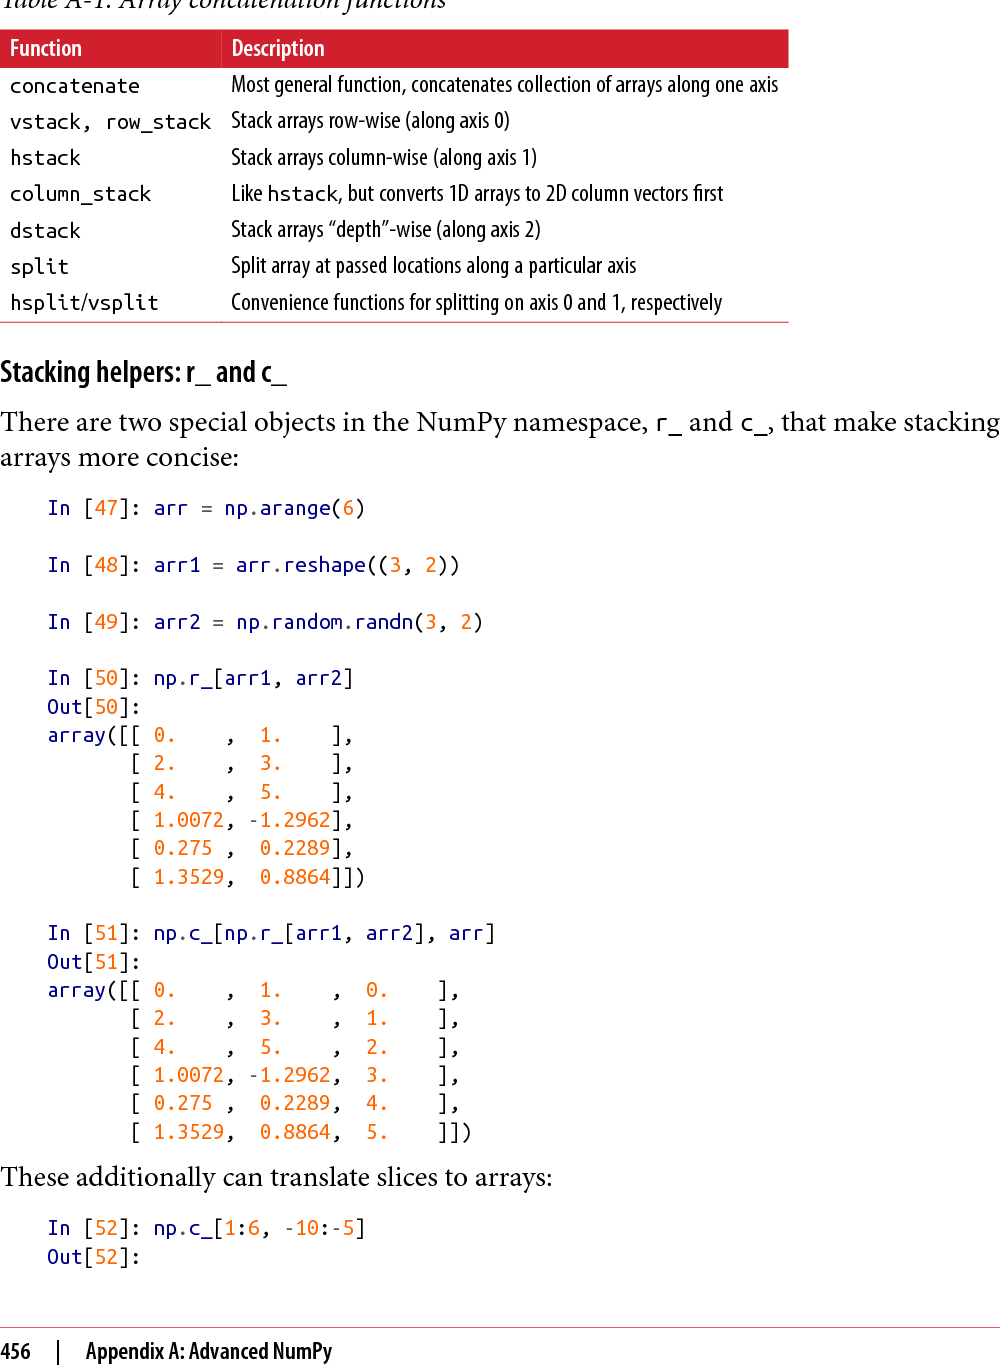 Table A-1 from Python for Data Analysis - Semantic Scholar